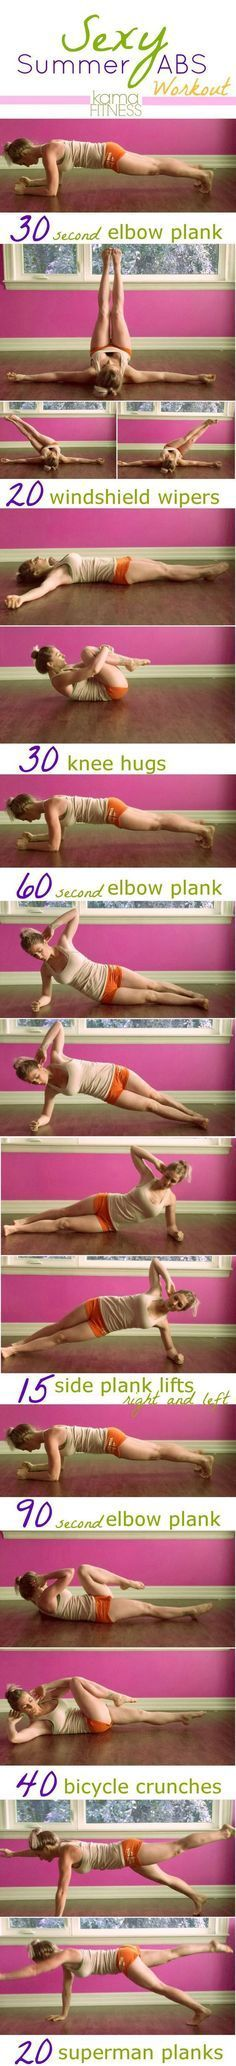 Toned Abs Workout Planks, side plank lifts, knee hugs to get those abs on fire – Ever Well Women